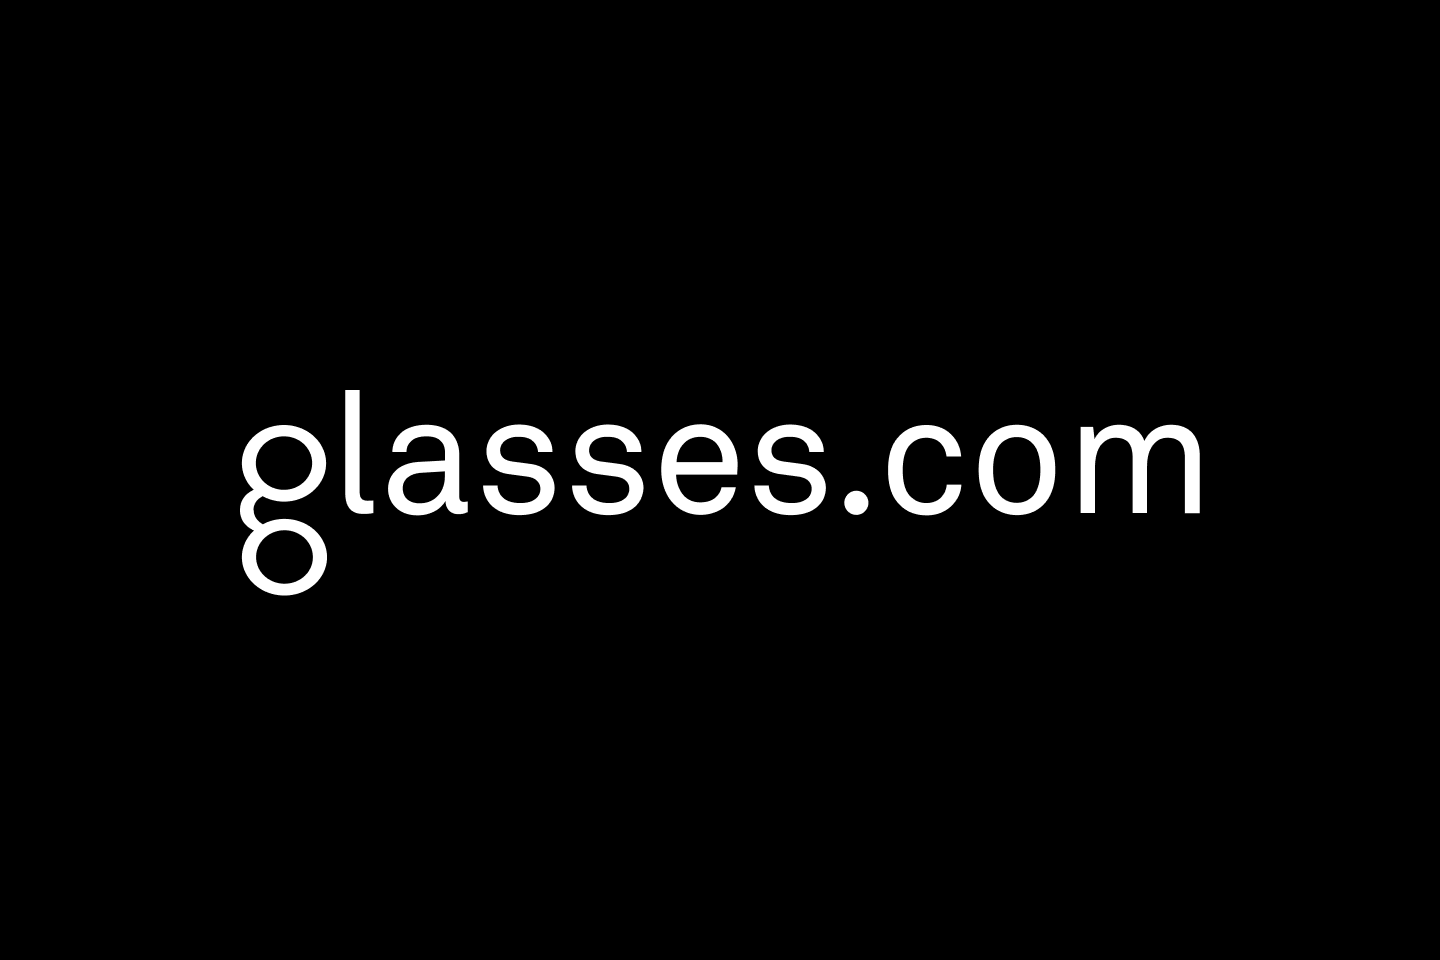 glasses.com logo